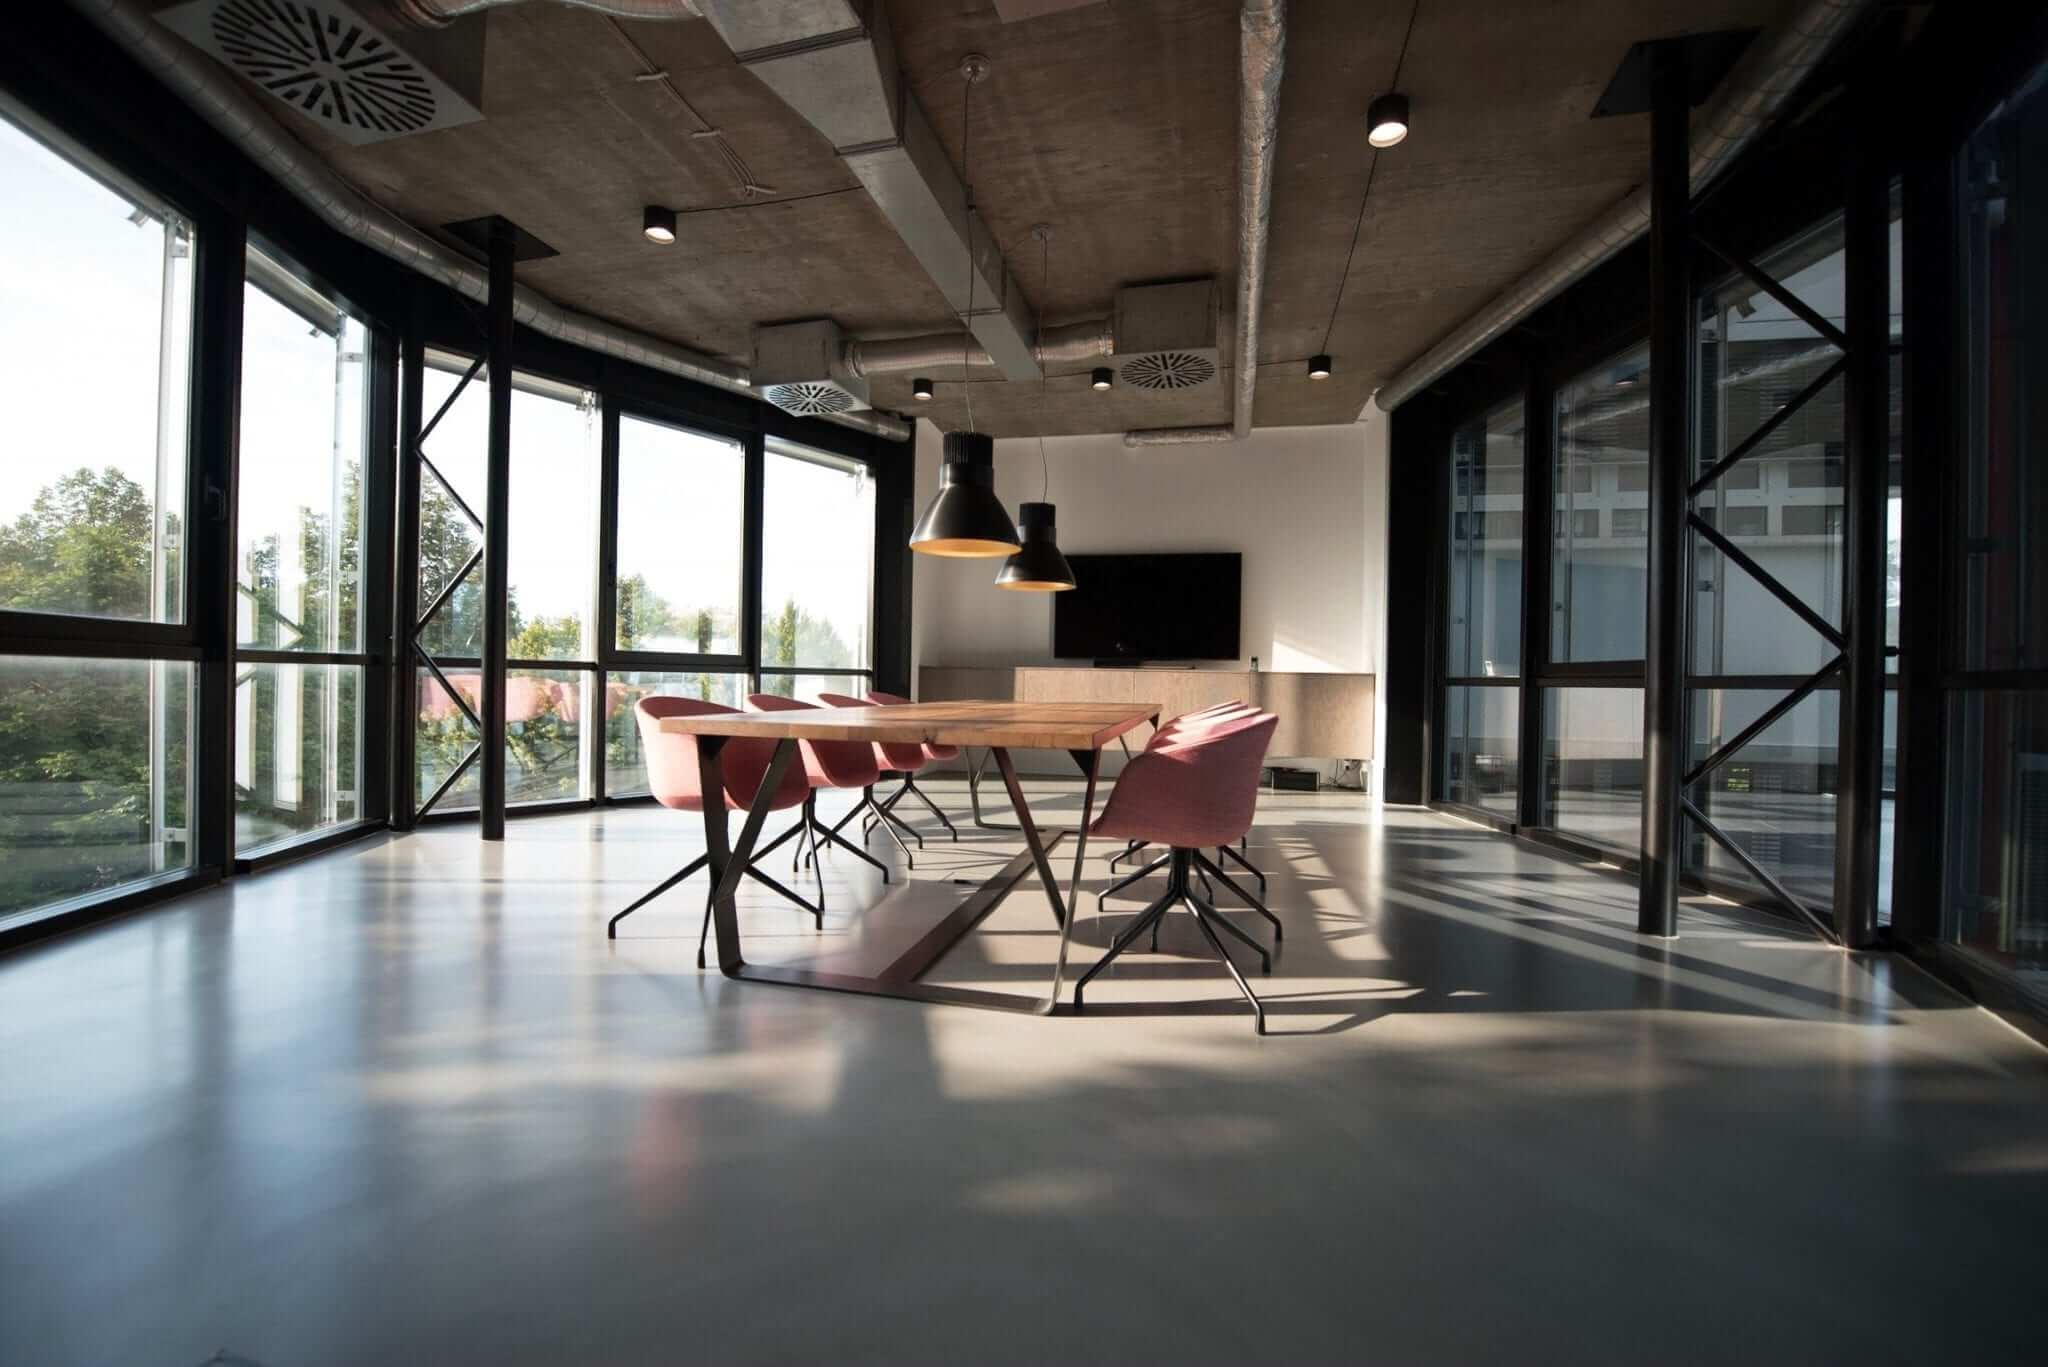 Access Flooring helping Facility Managers